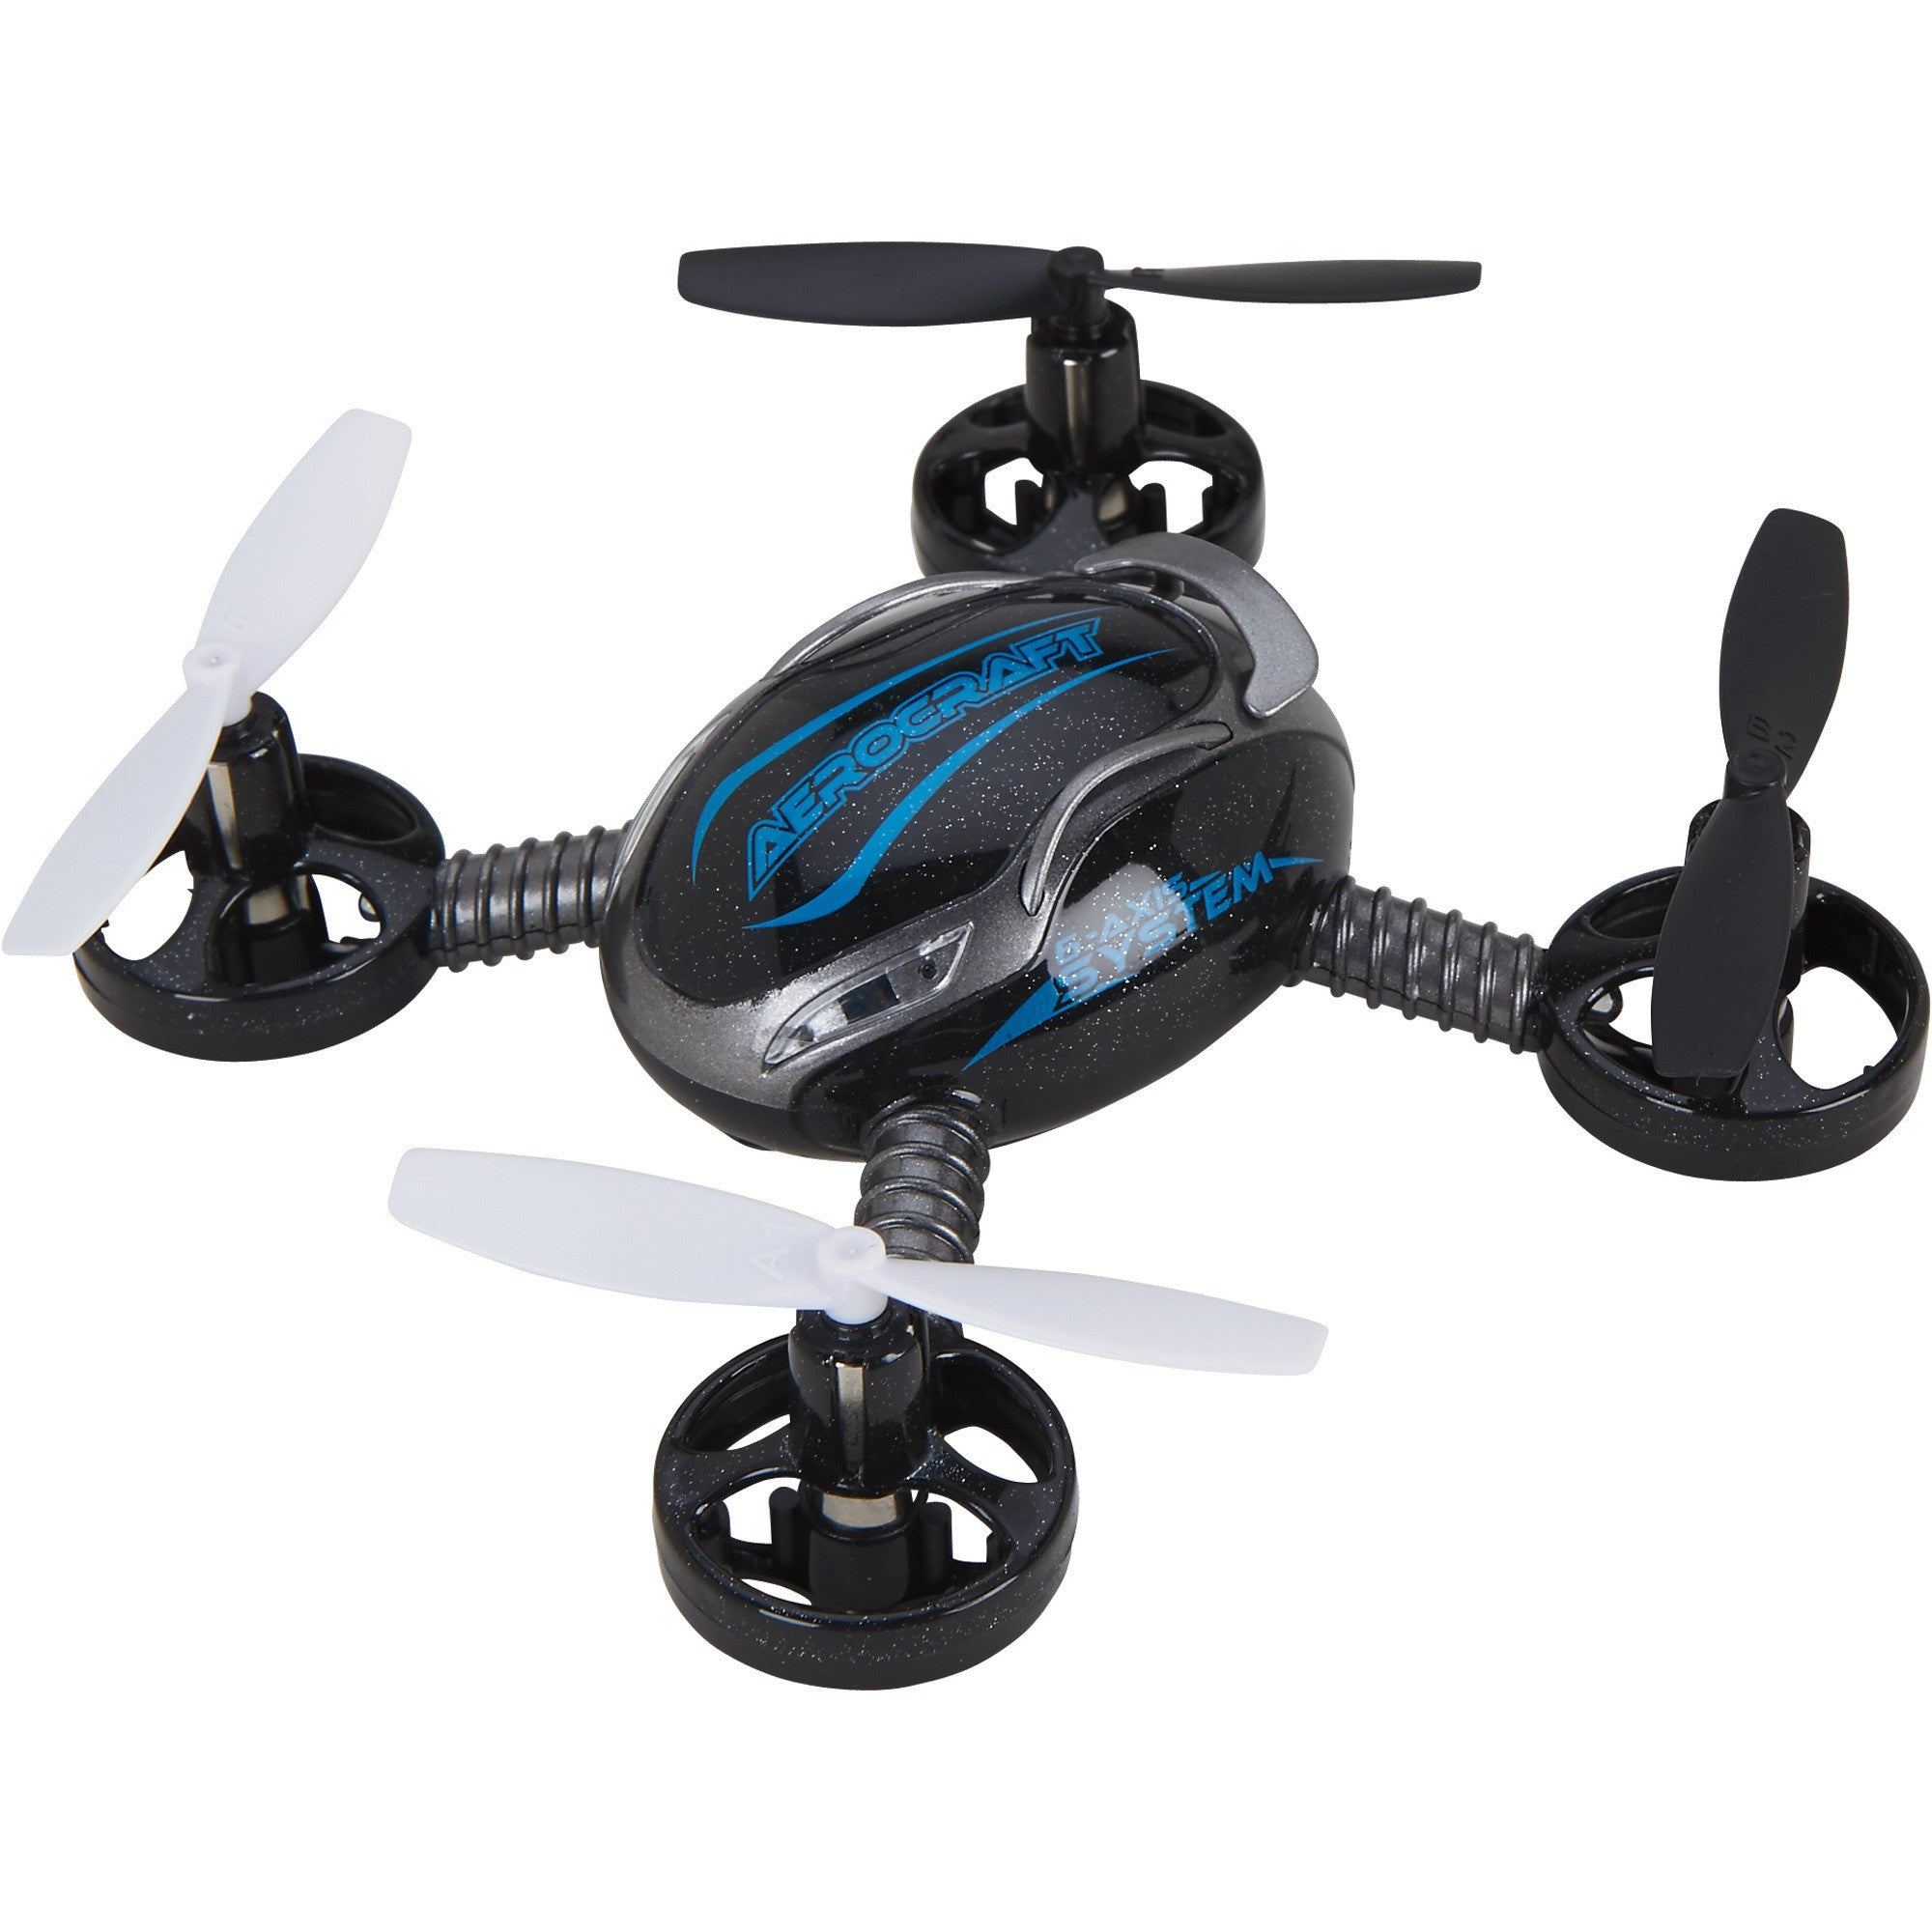 Mini QR-4 Aerocraft Quadrocopter Remote Control RC Drone, Blue - Off The Wall Toys and Gifts